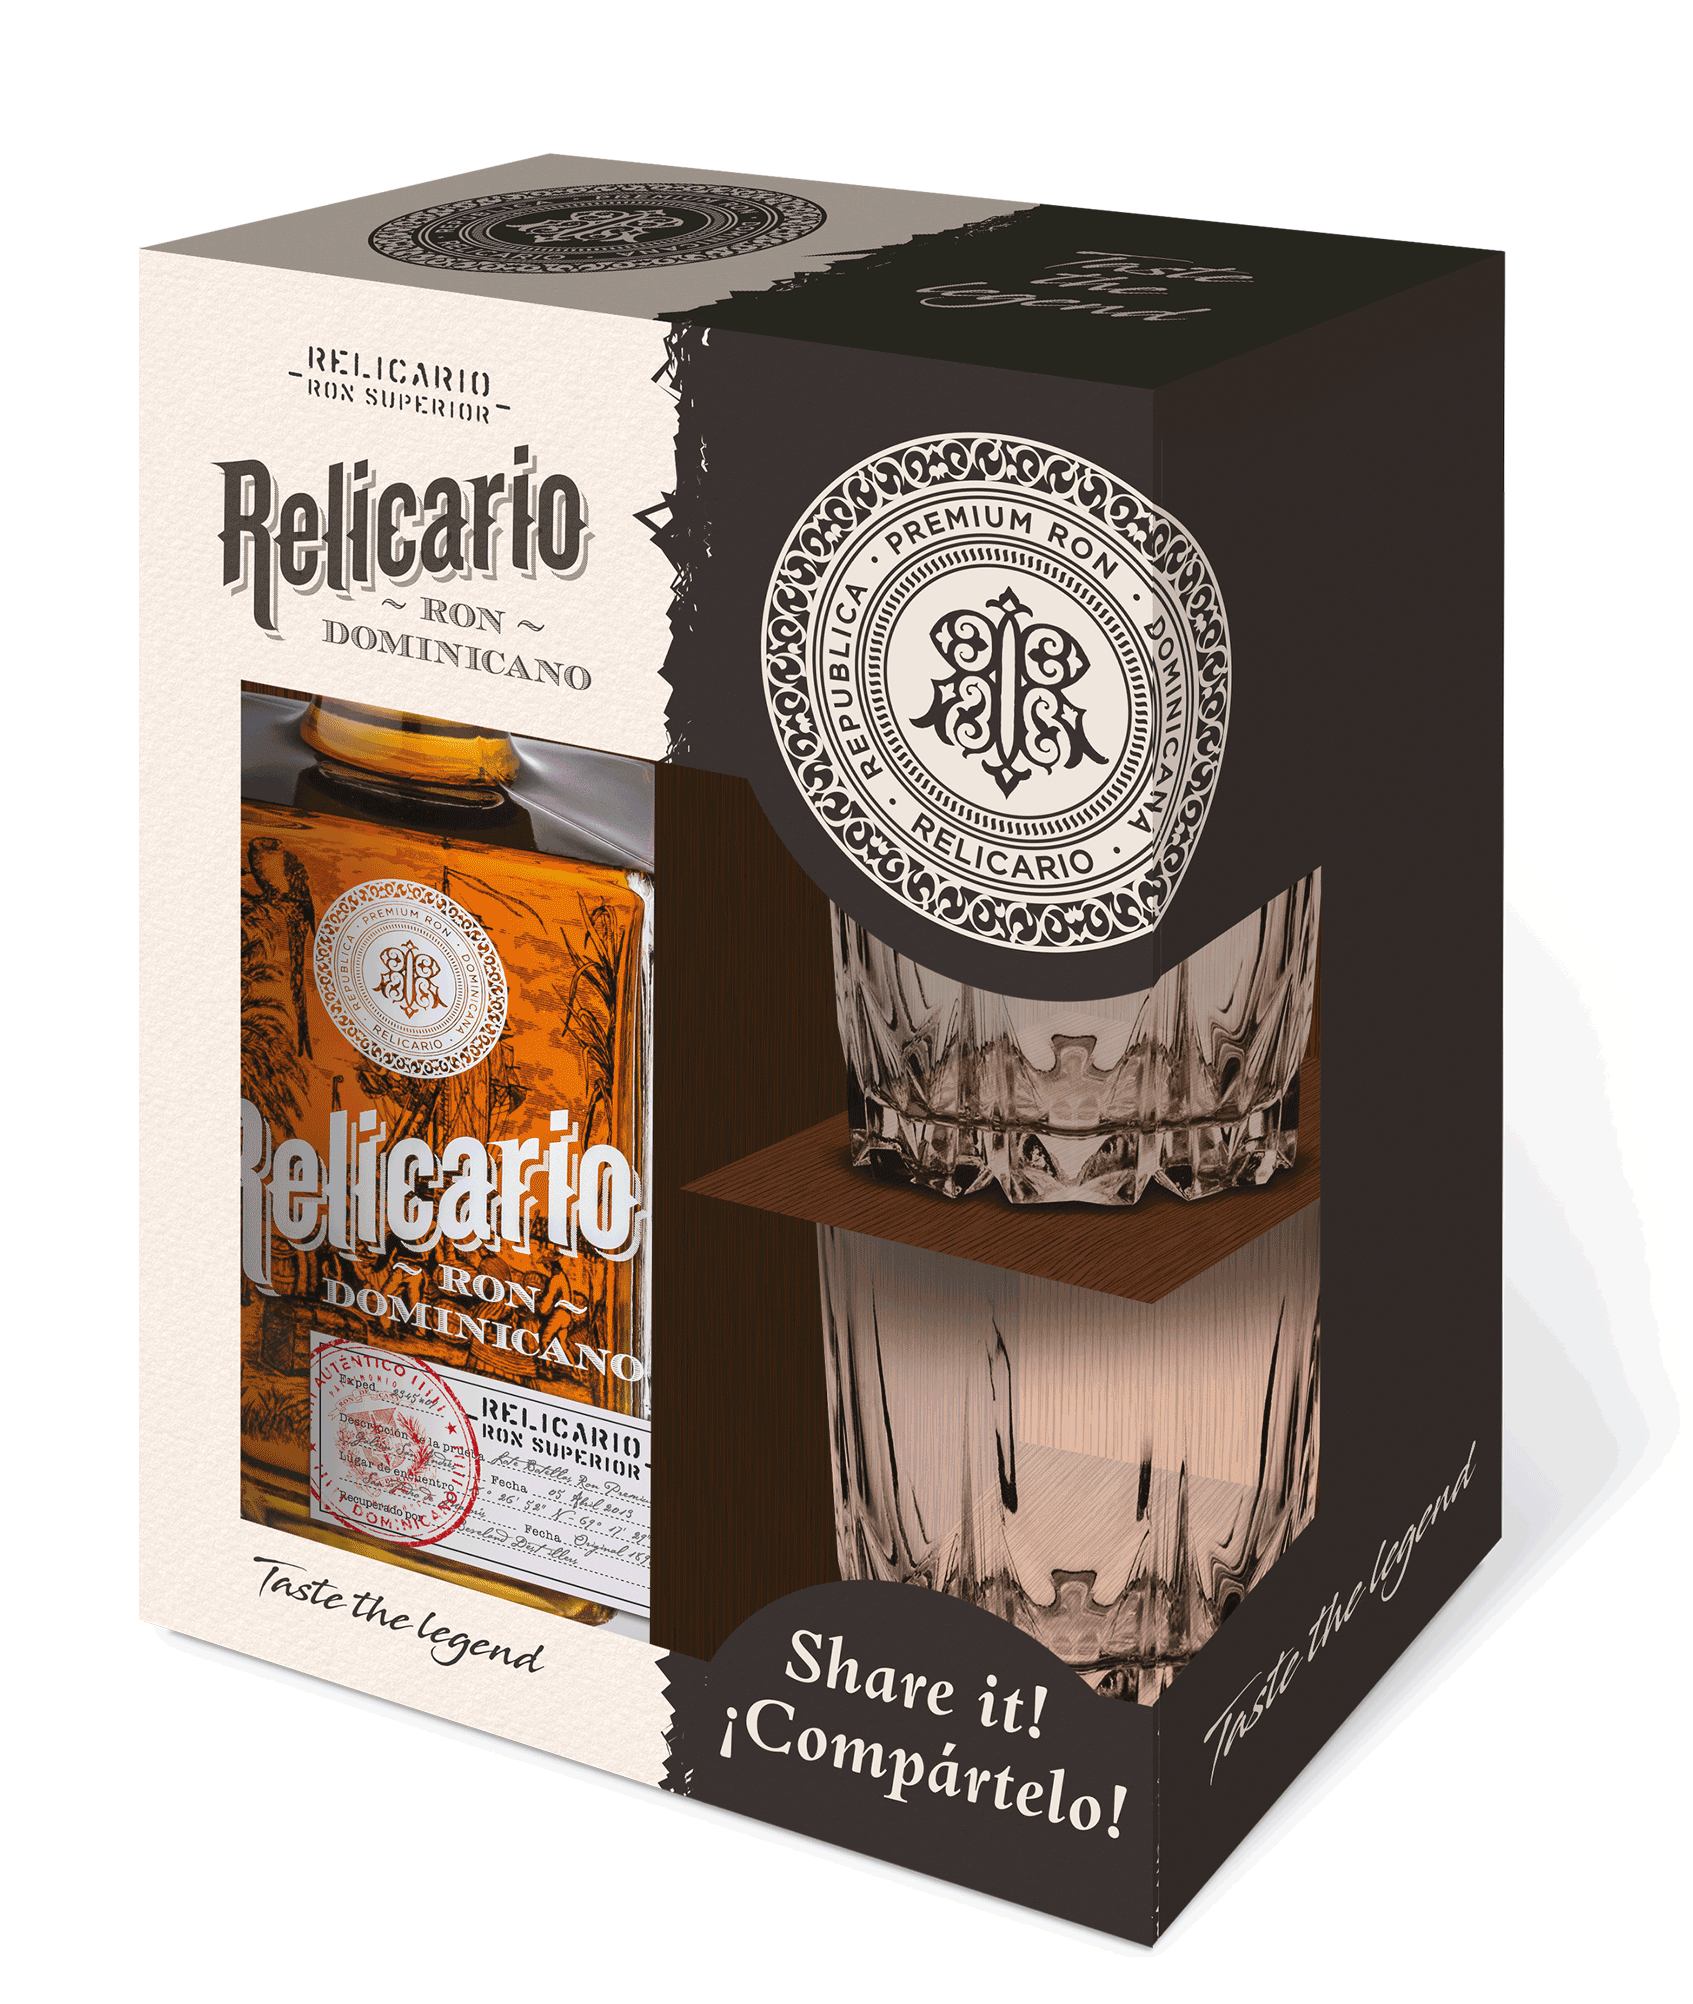 rhum-republique-dominicaine-relicario-superior-coffret